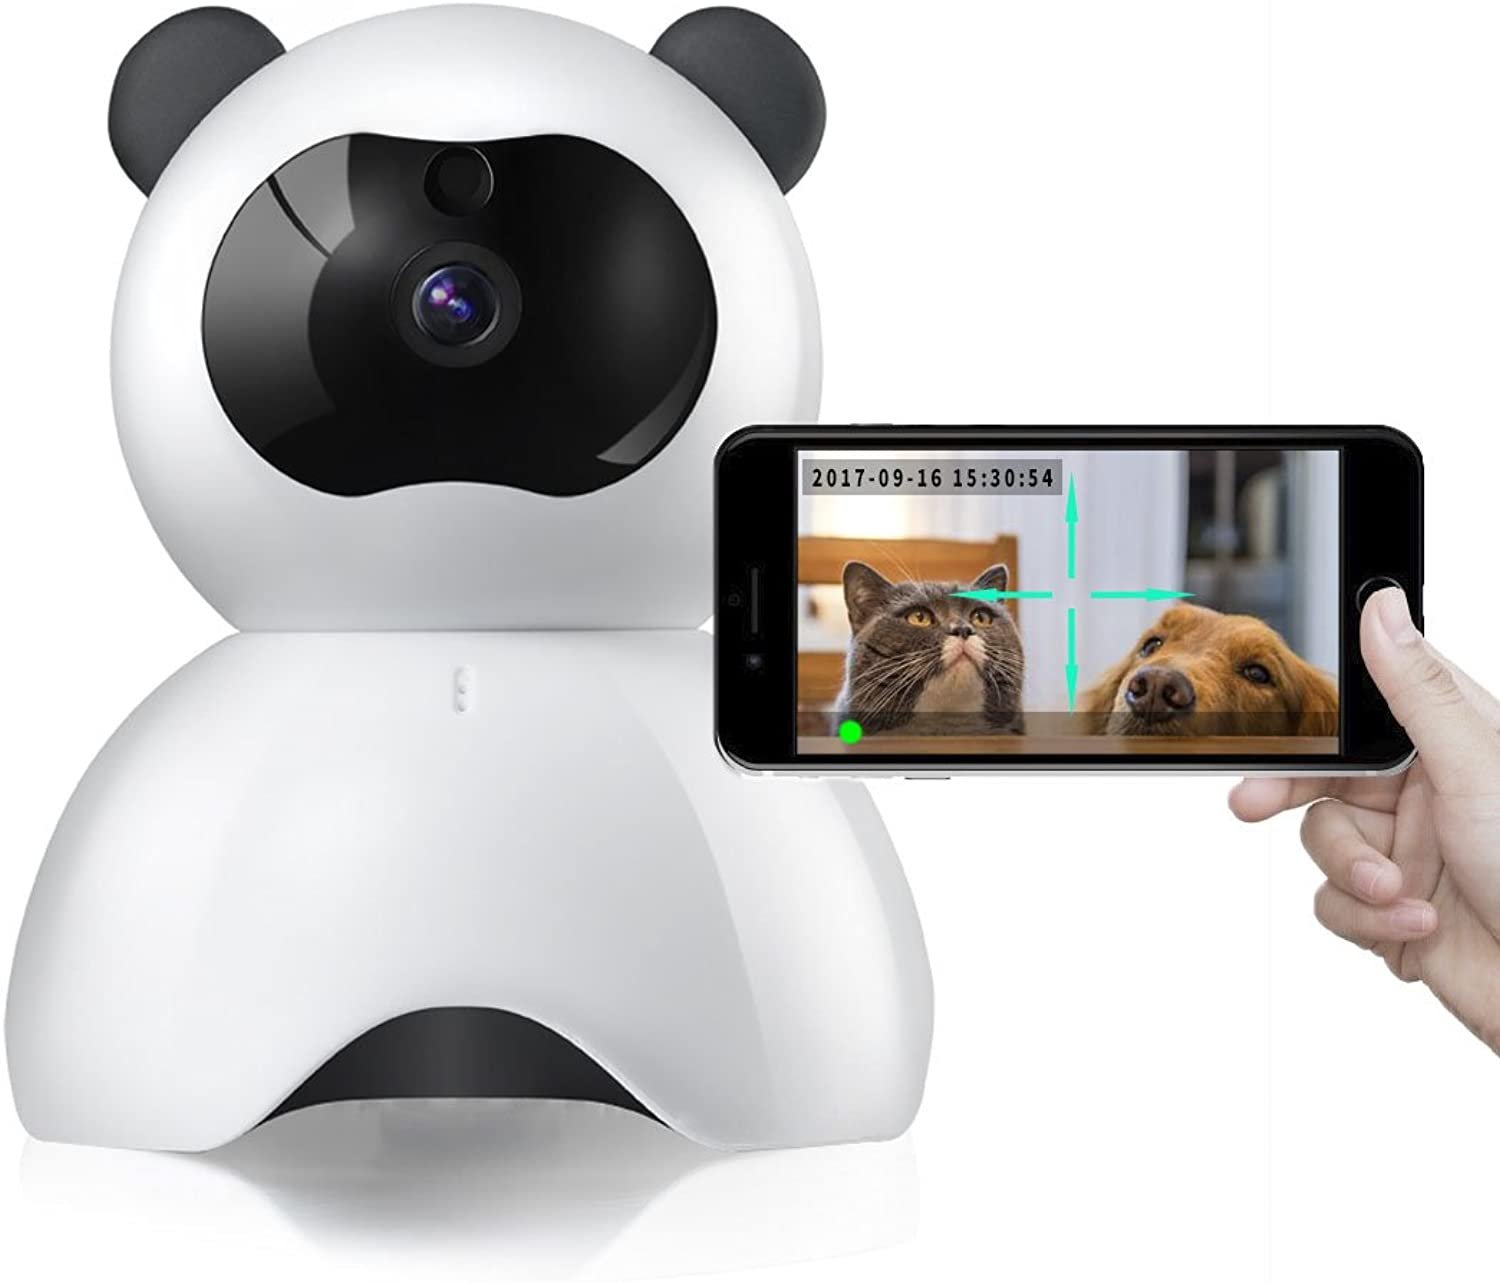 HVTKL Pet Monitor 720P HD Wireless Dog Monitor Twoway Audio Indoor Home Security IP Camera Night Vision